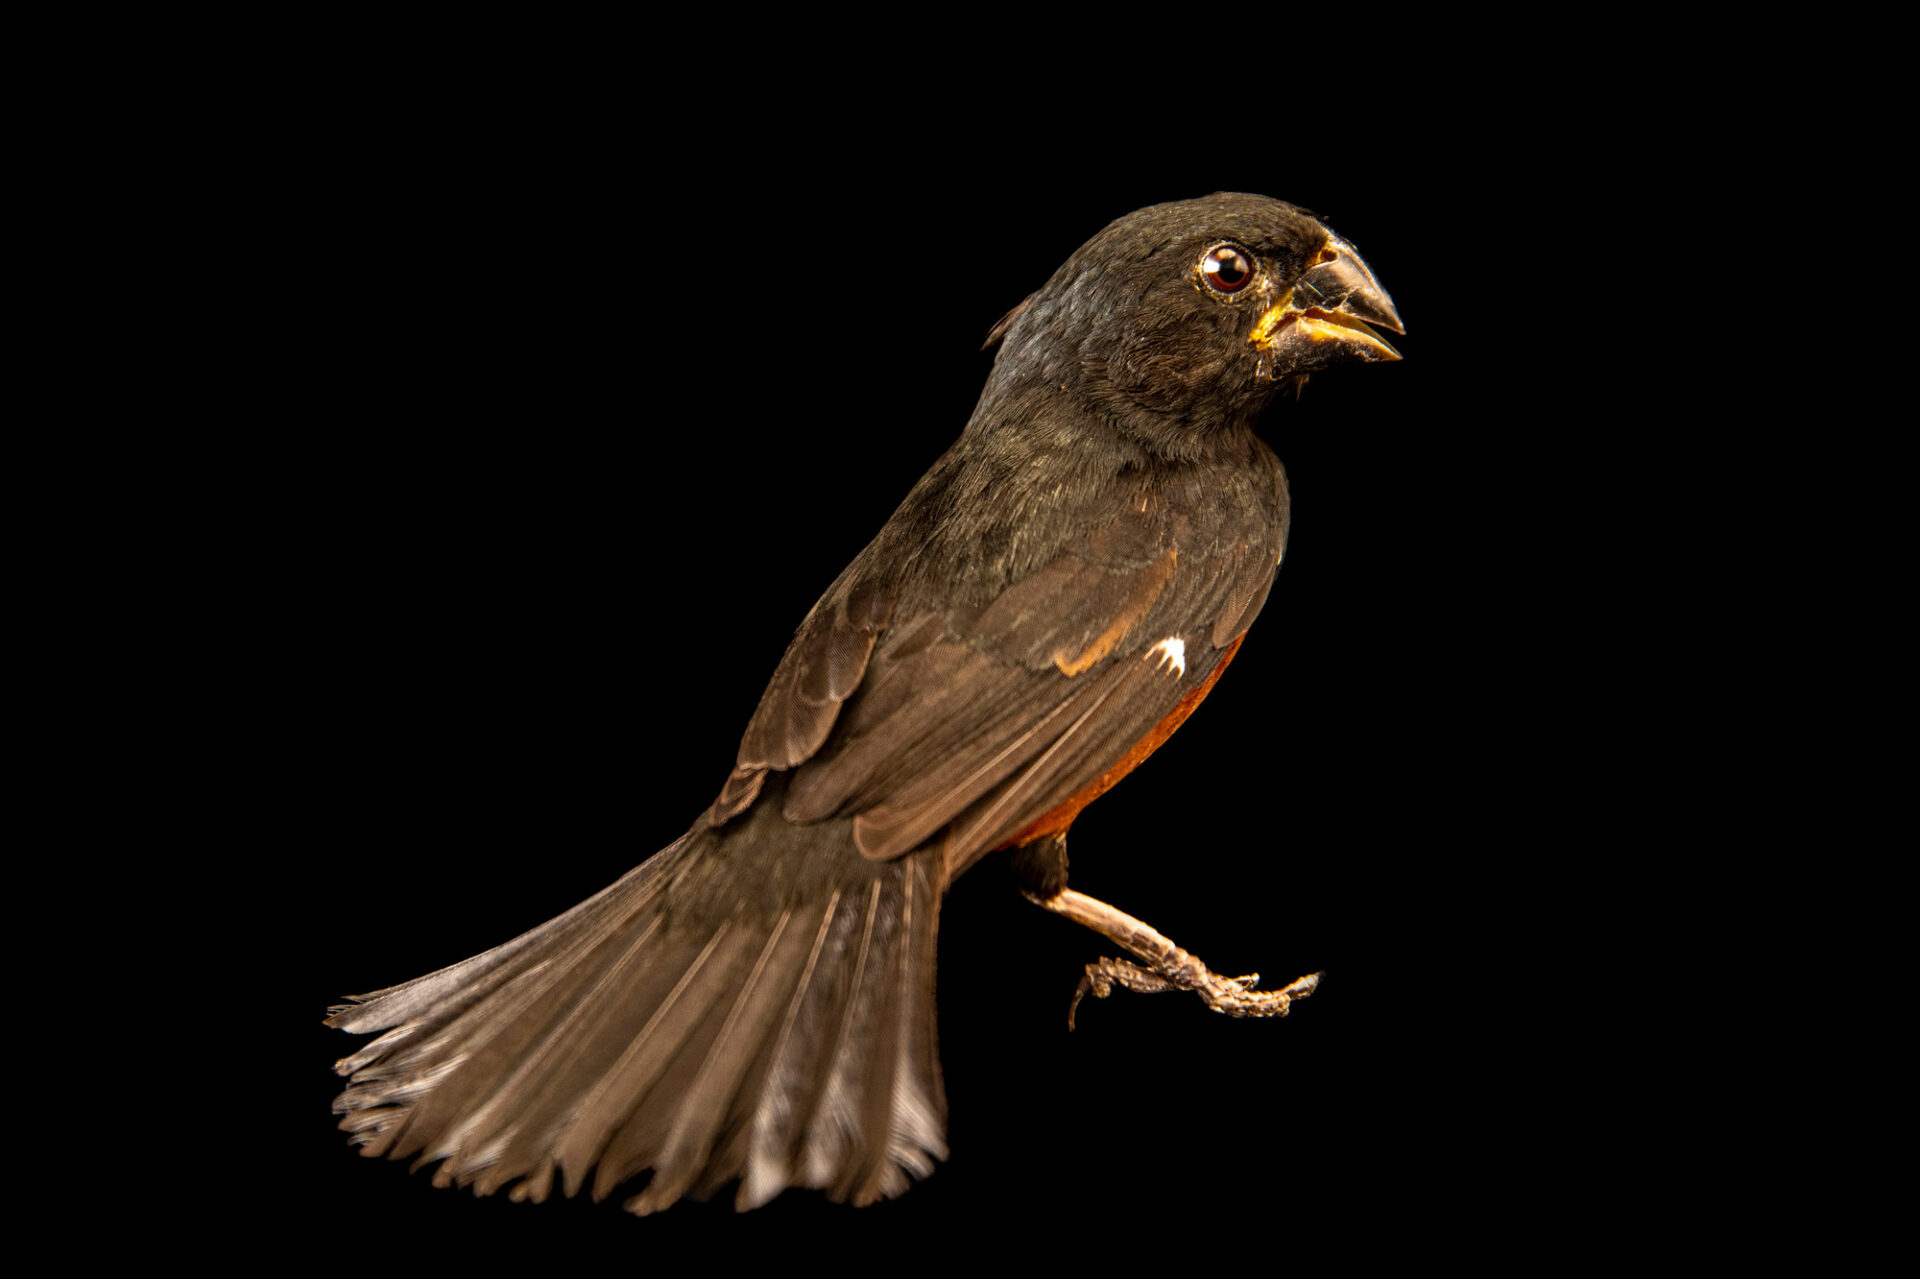 Photo: A chestnut-bellied seed finch (Sporophila angolensis torrida) at Cetas-Ibama in Brazil, a wildlife rehab center in Manaus, Brazil.